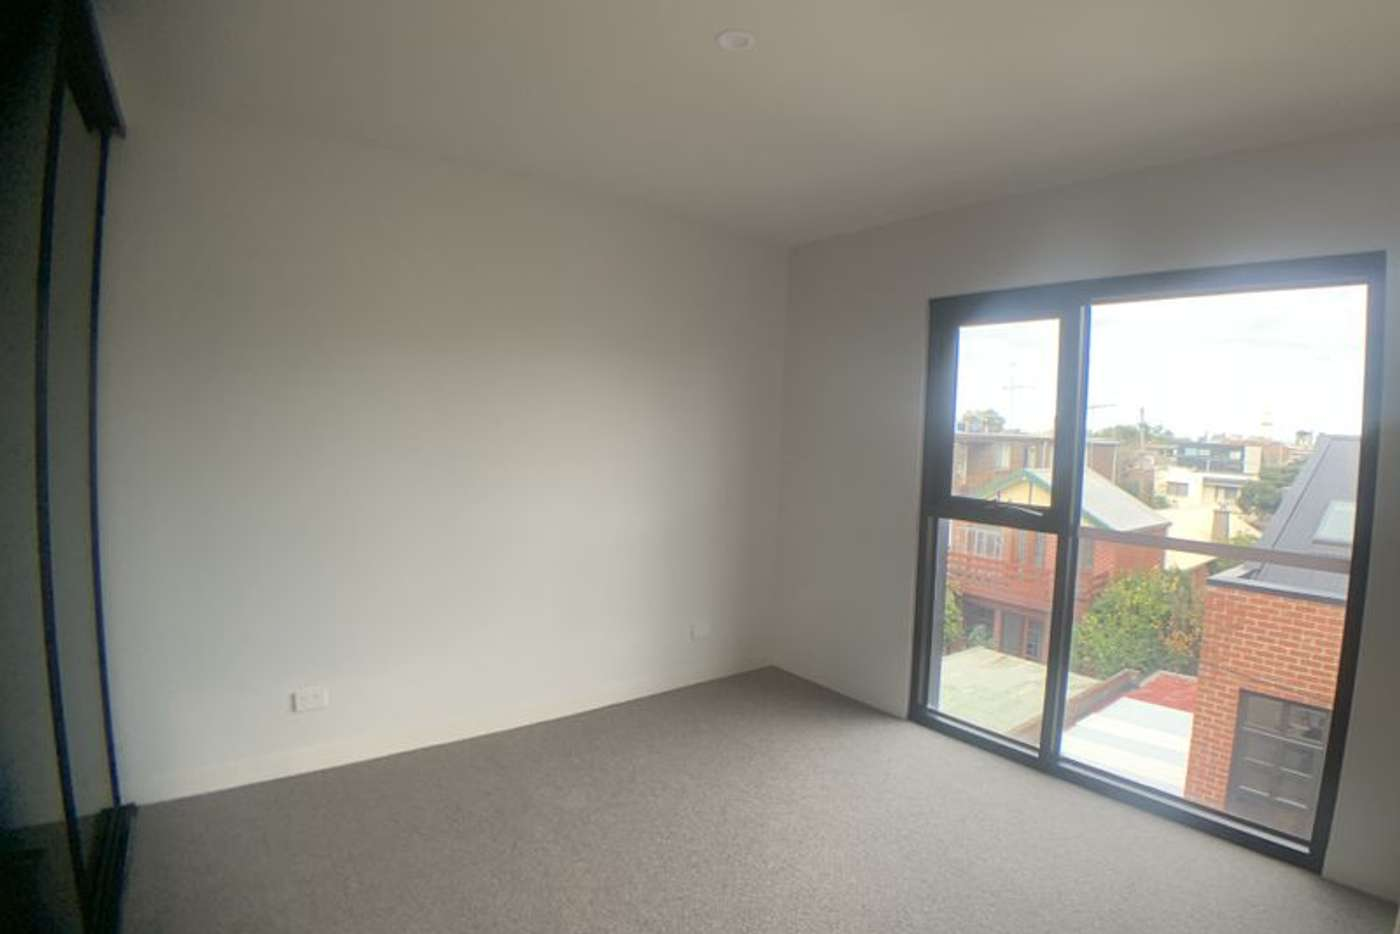 Fifth view of Homely apartment listing, 206/115 Church Street, Richmond VIC 3121